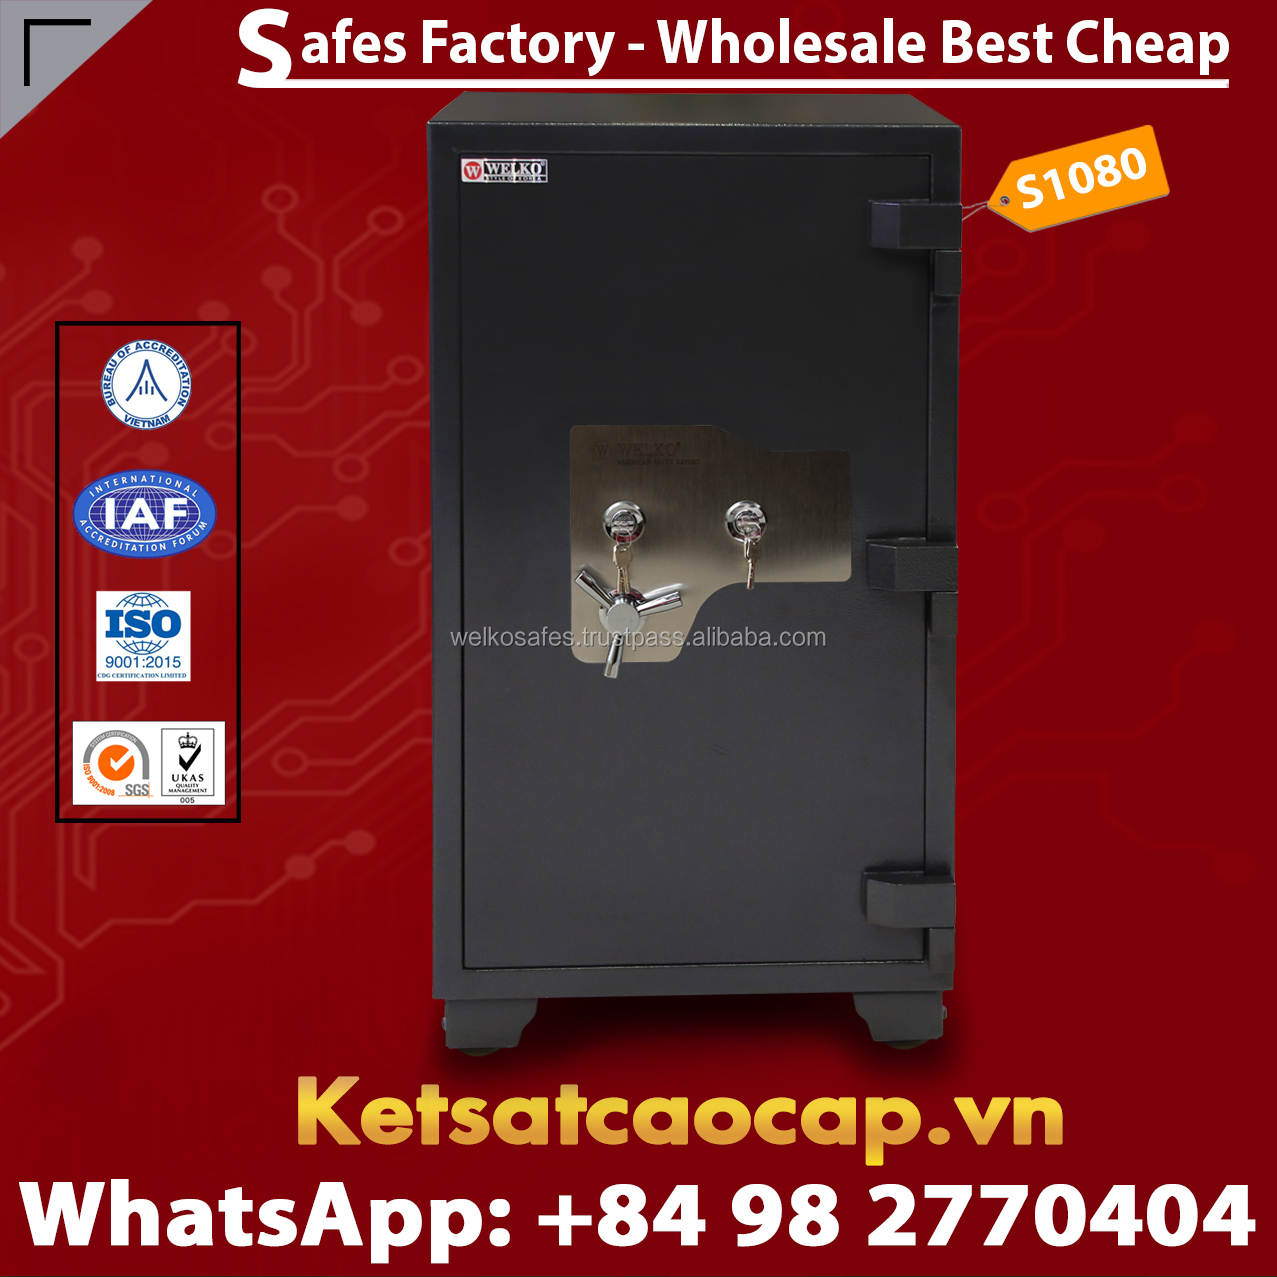 Metal Steel Strong Electronic Digital Key Safes - New Design - New Locking System - High Quality - From WELKO Safes